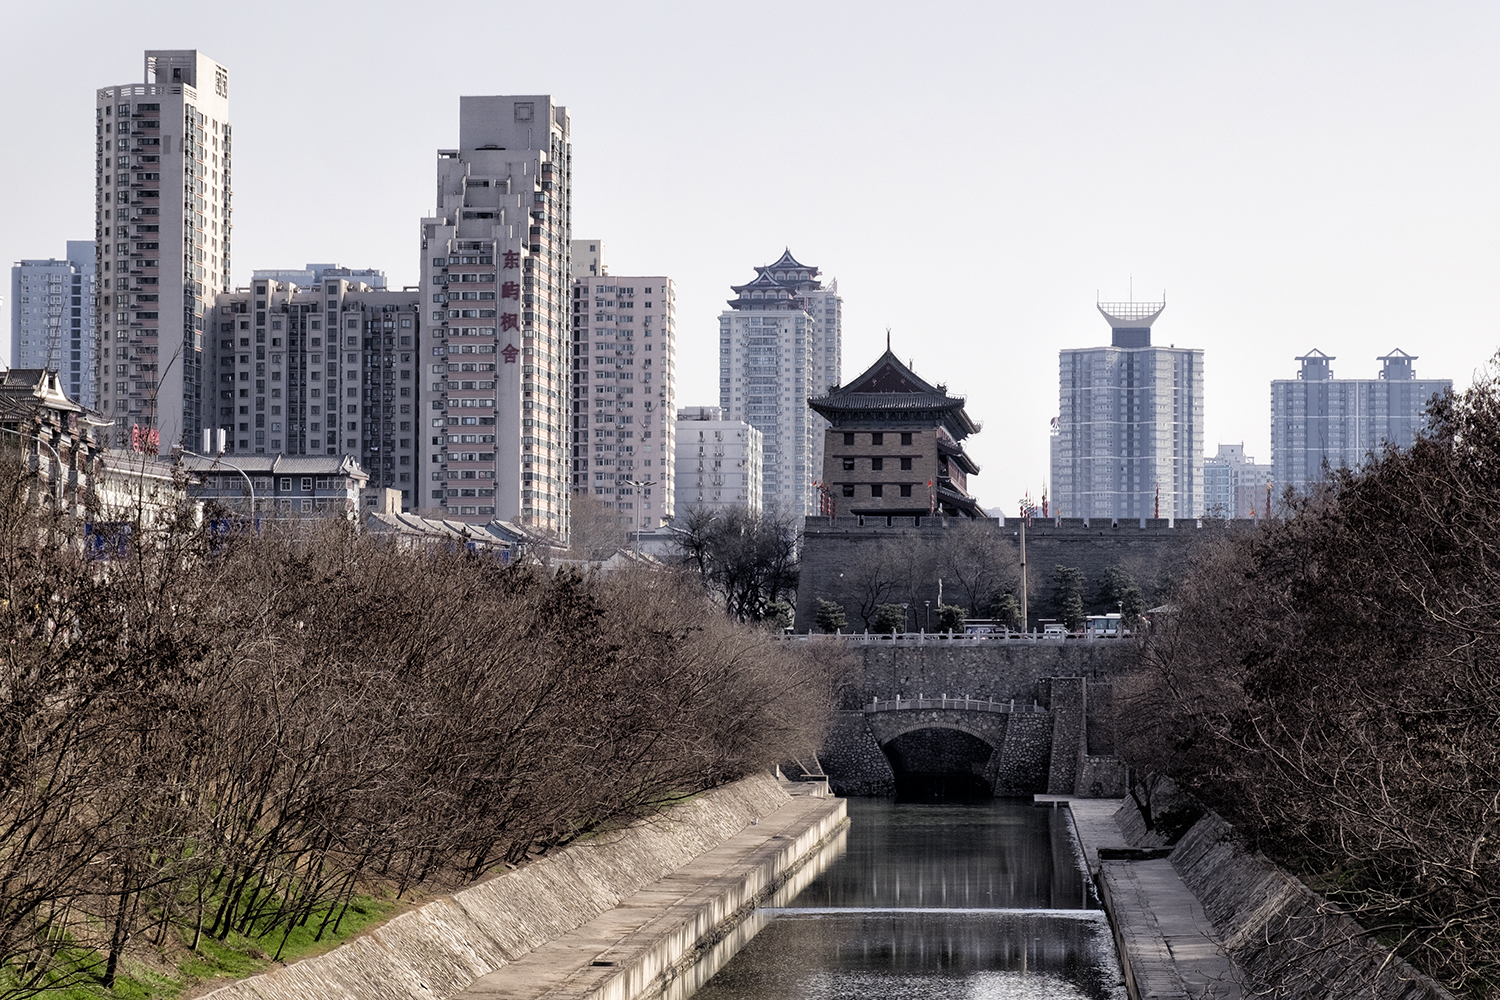 Xi'an City Walls and Moat